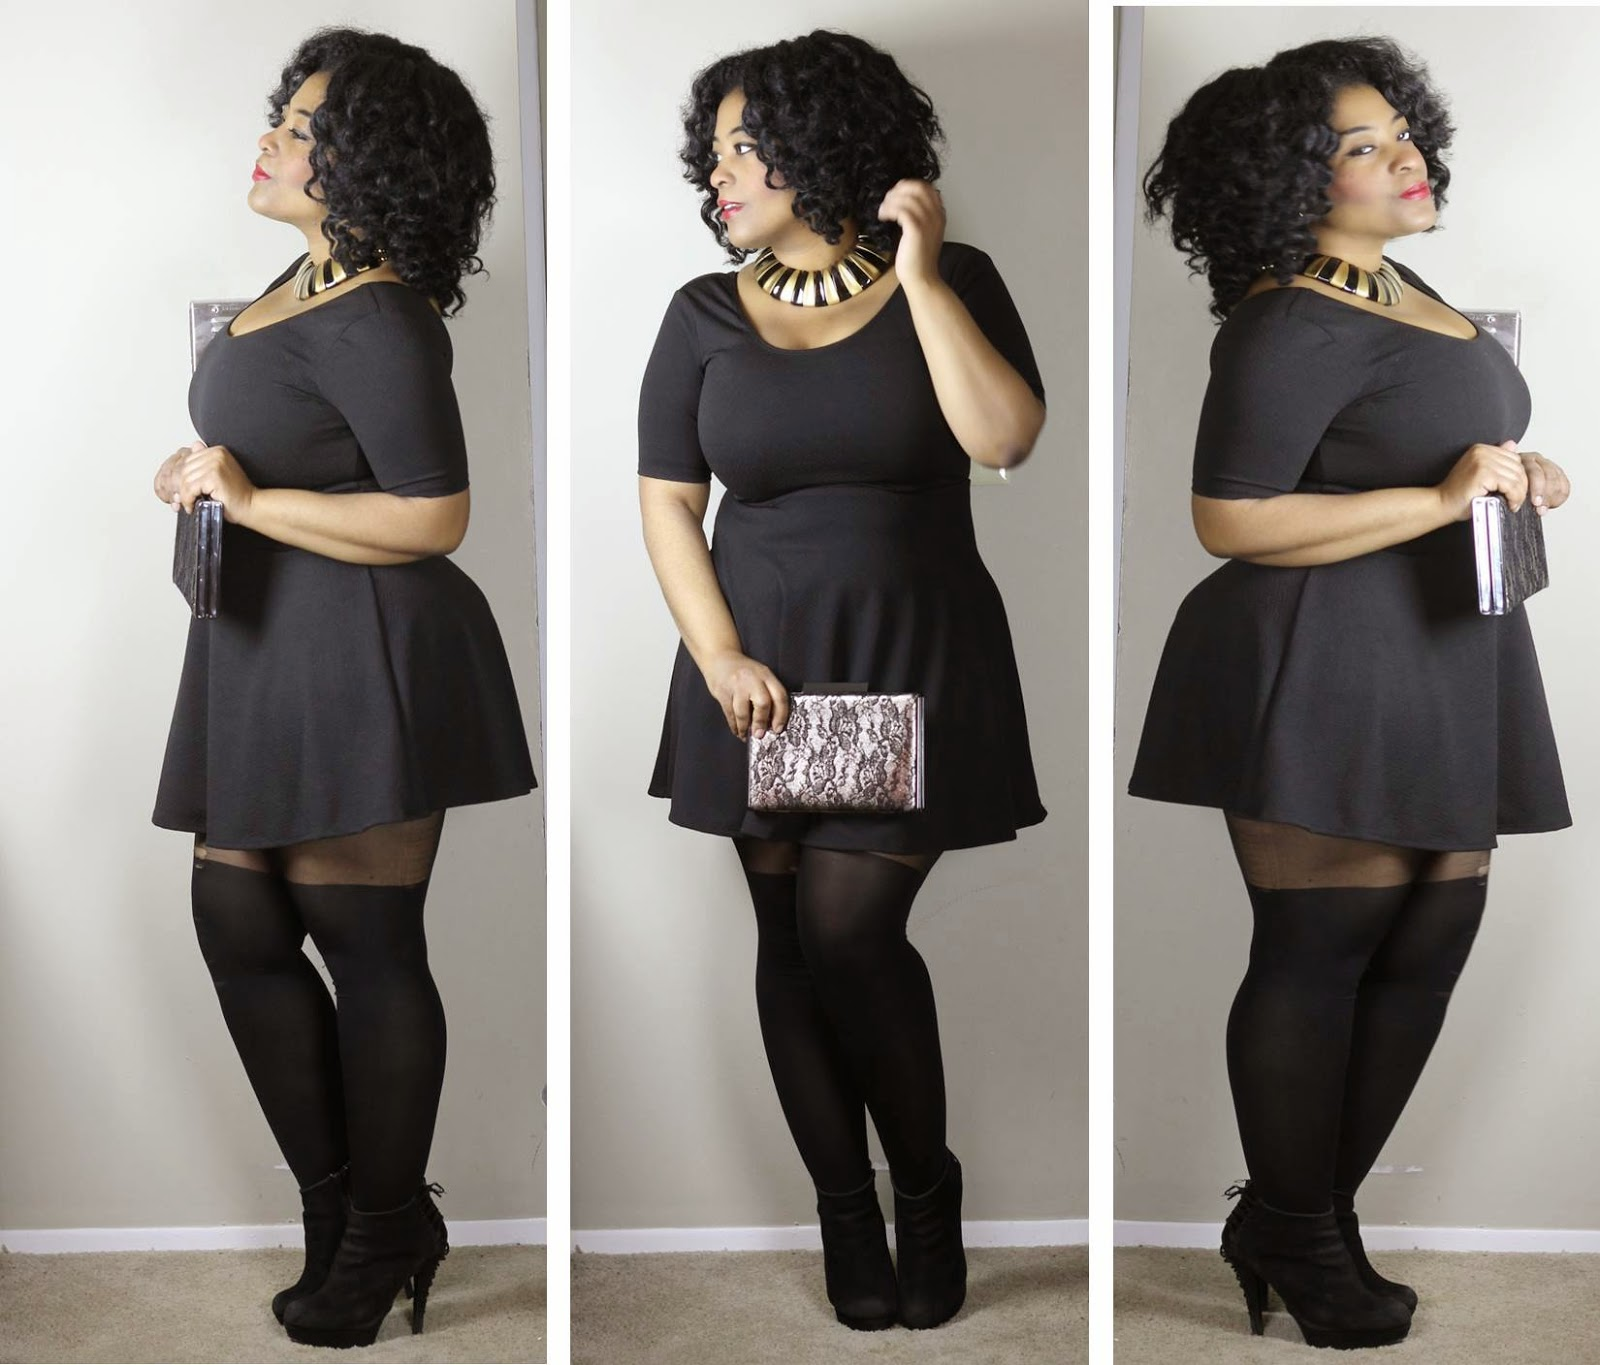 0e32b31a55c Valentine s Day Outfit Inspiration  Date Night in Your LBD